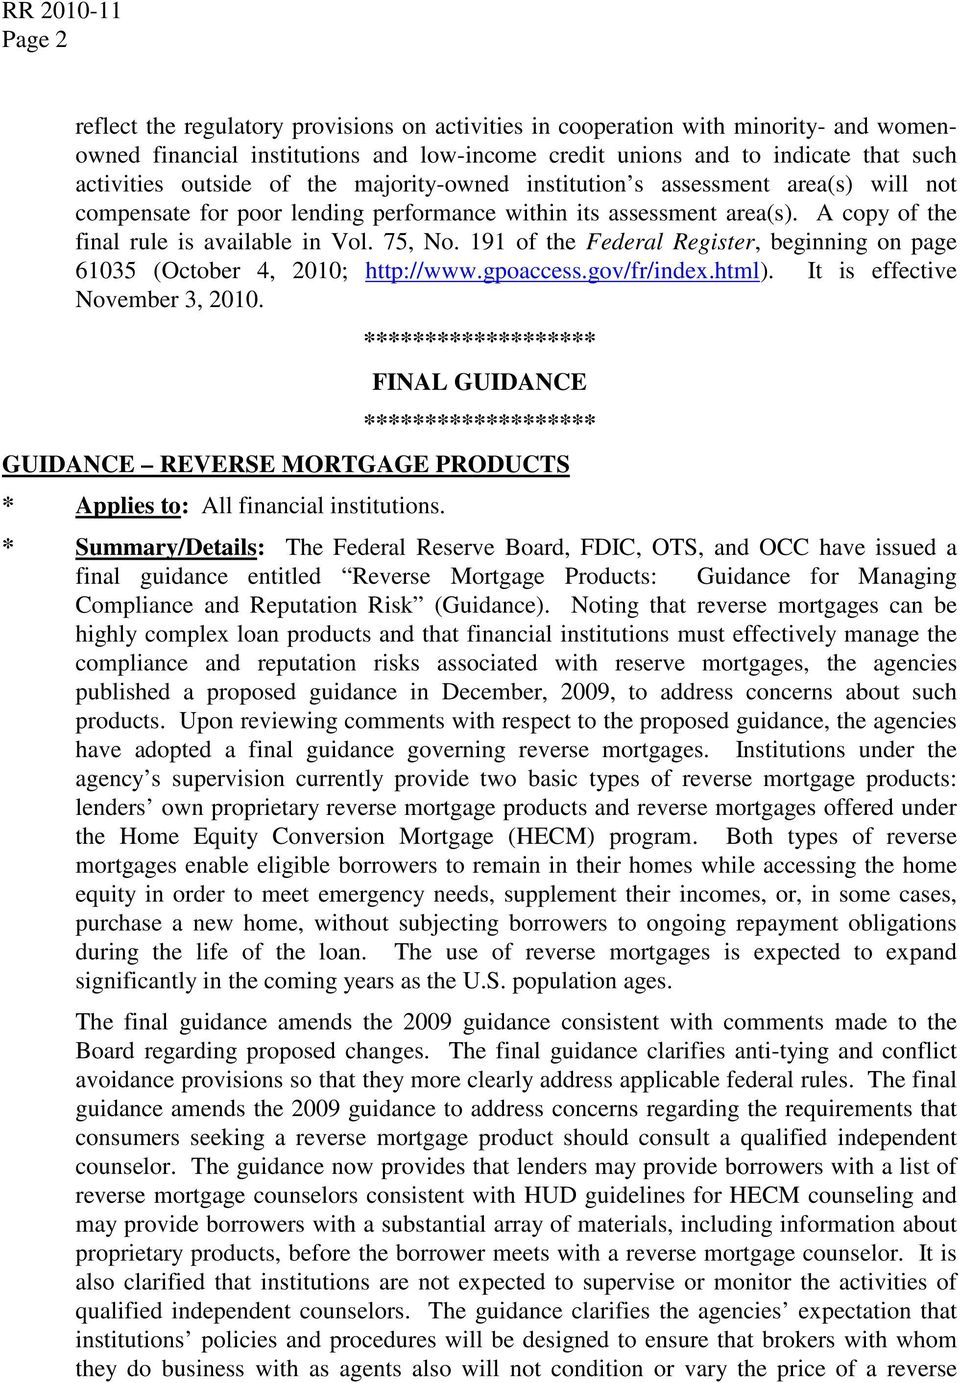 191 of the Federal Register, beginning on page 61035 (October 4, 2010; http://www.gpoaccess.gov/fr/index.html). It is effective November 3, 2010.